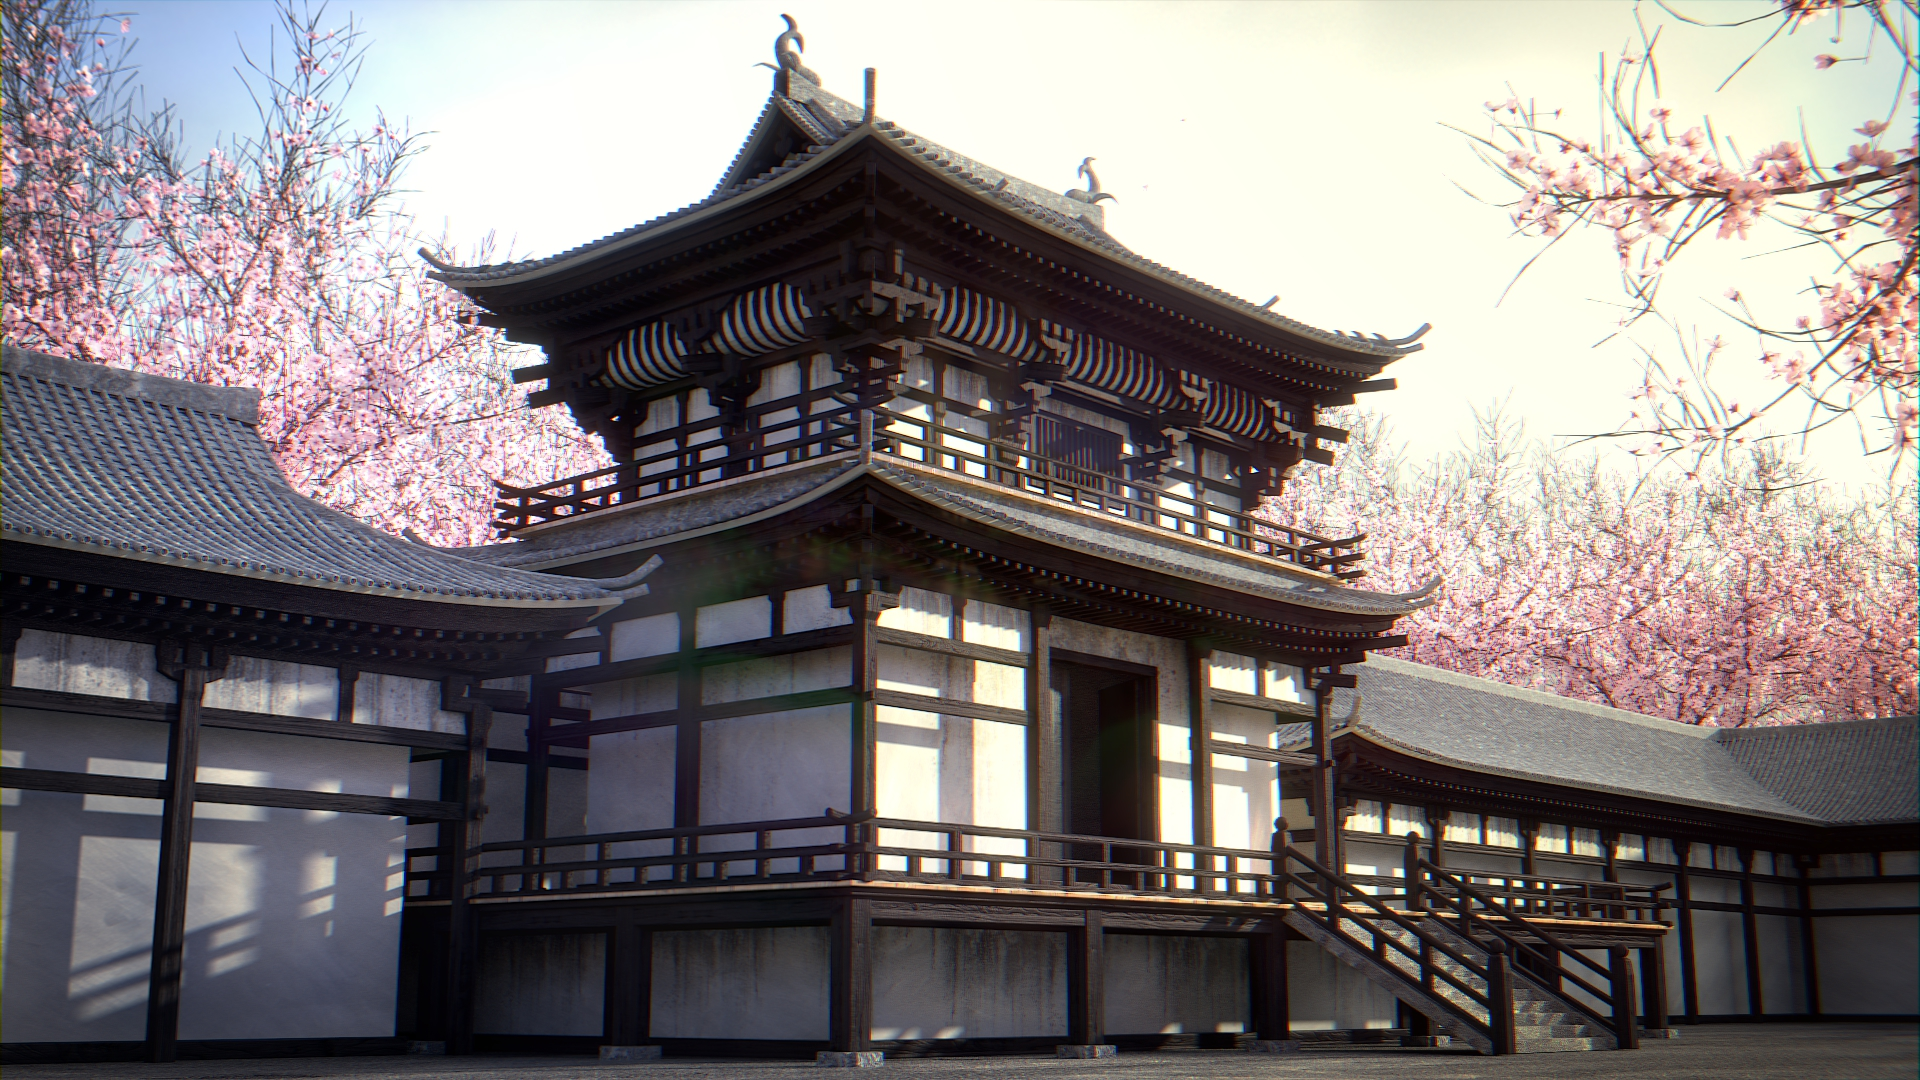 Japanese Temple - BlenderNation: https://www.blendernation.com/2014/09/17/japanese-temple/